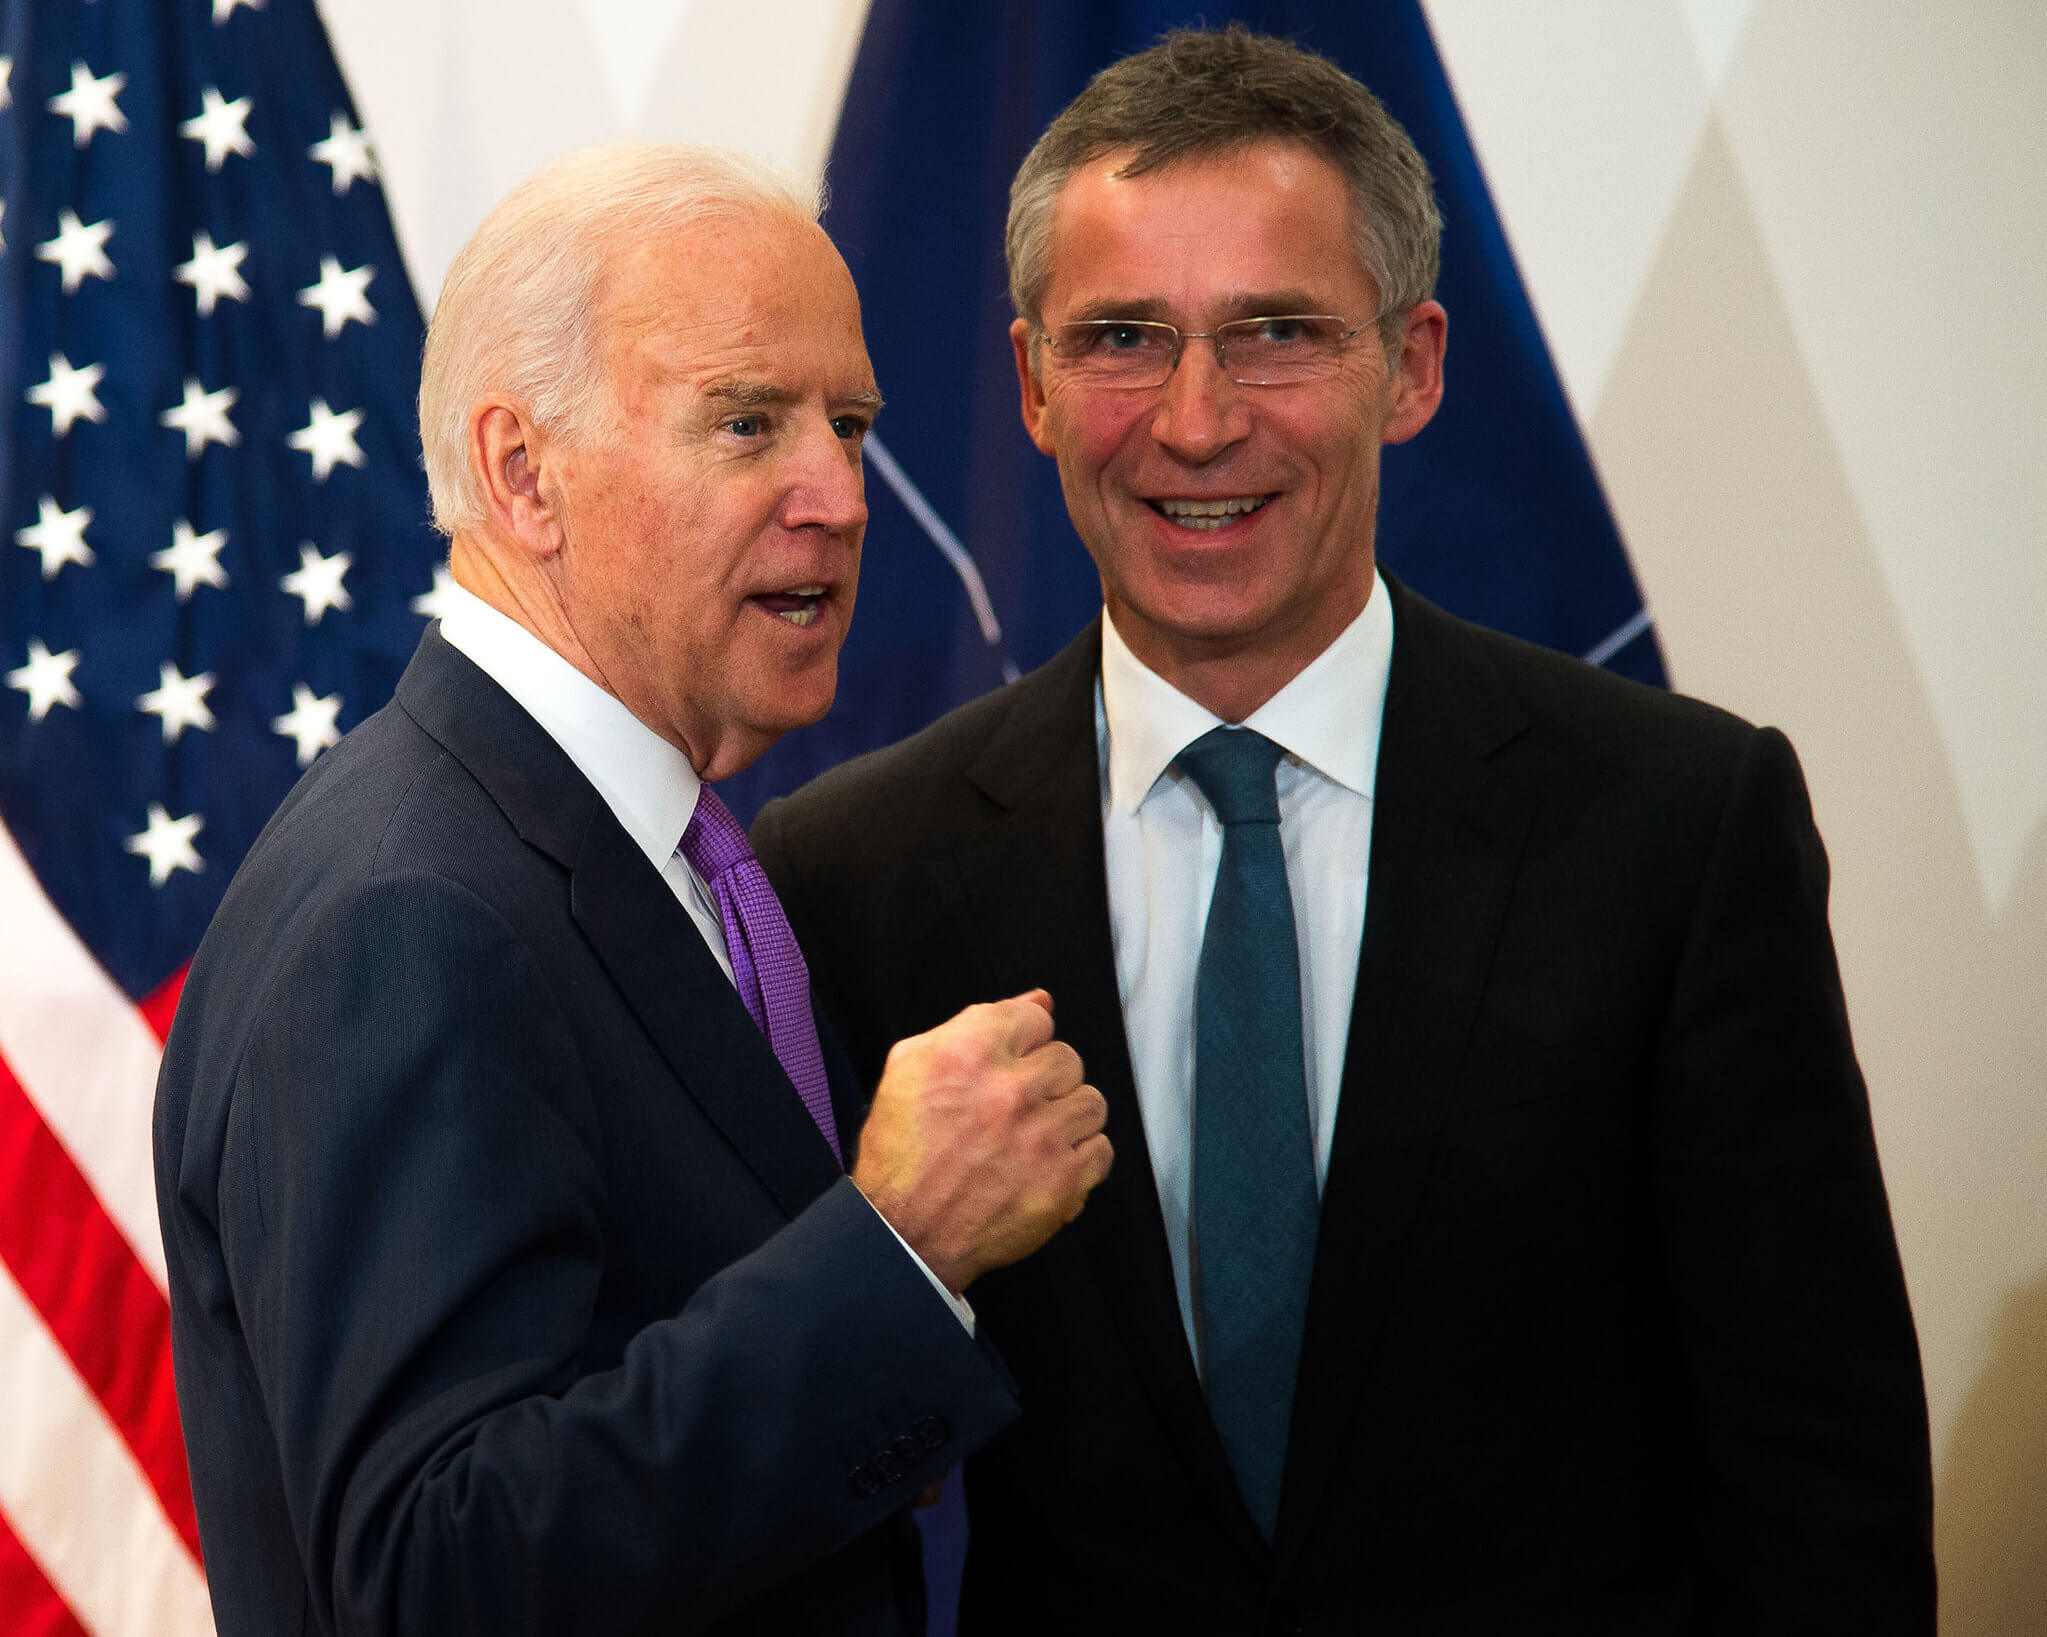 Klijn-Bilateral meeting between NATO Secretary General Jens Stoltenberg and US Vice President Joe Biden in 2015. NATO